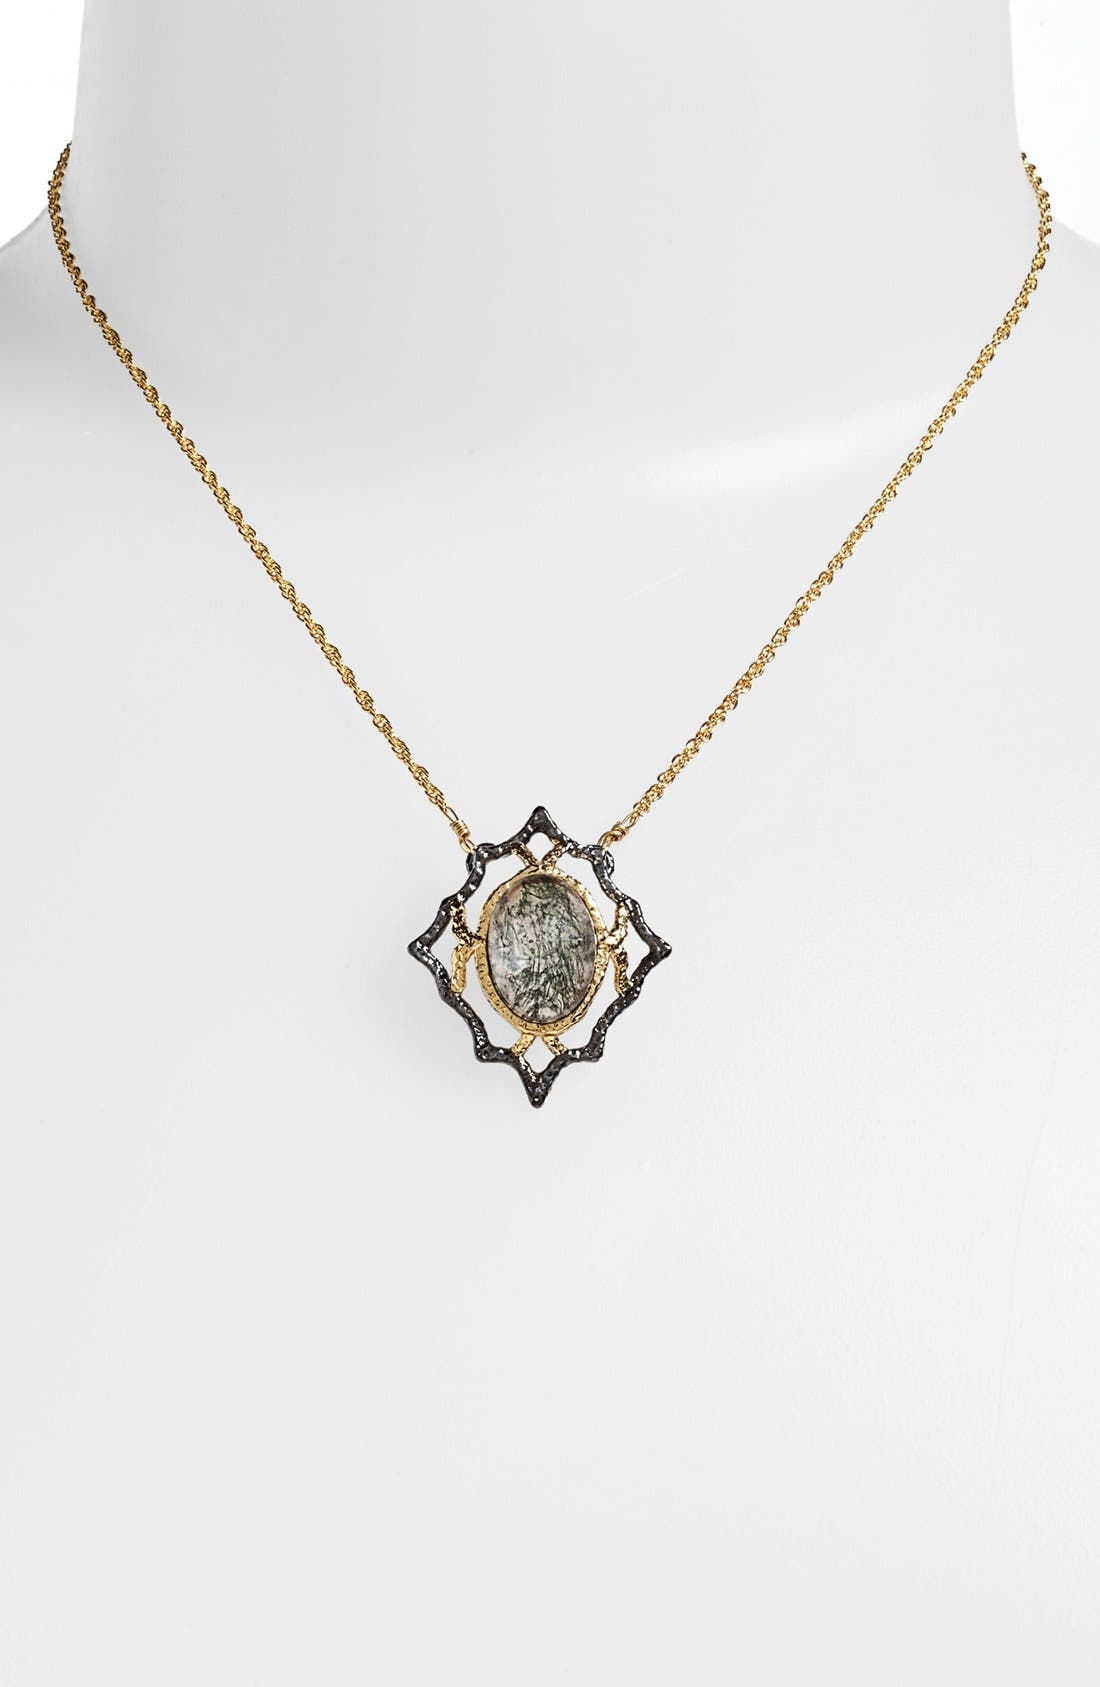 Main Image - Alexis Bittar 'Elements - Jardin de Papillon' Pendant Necklace